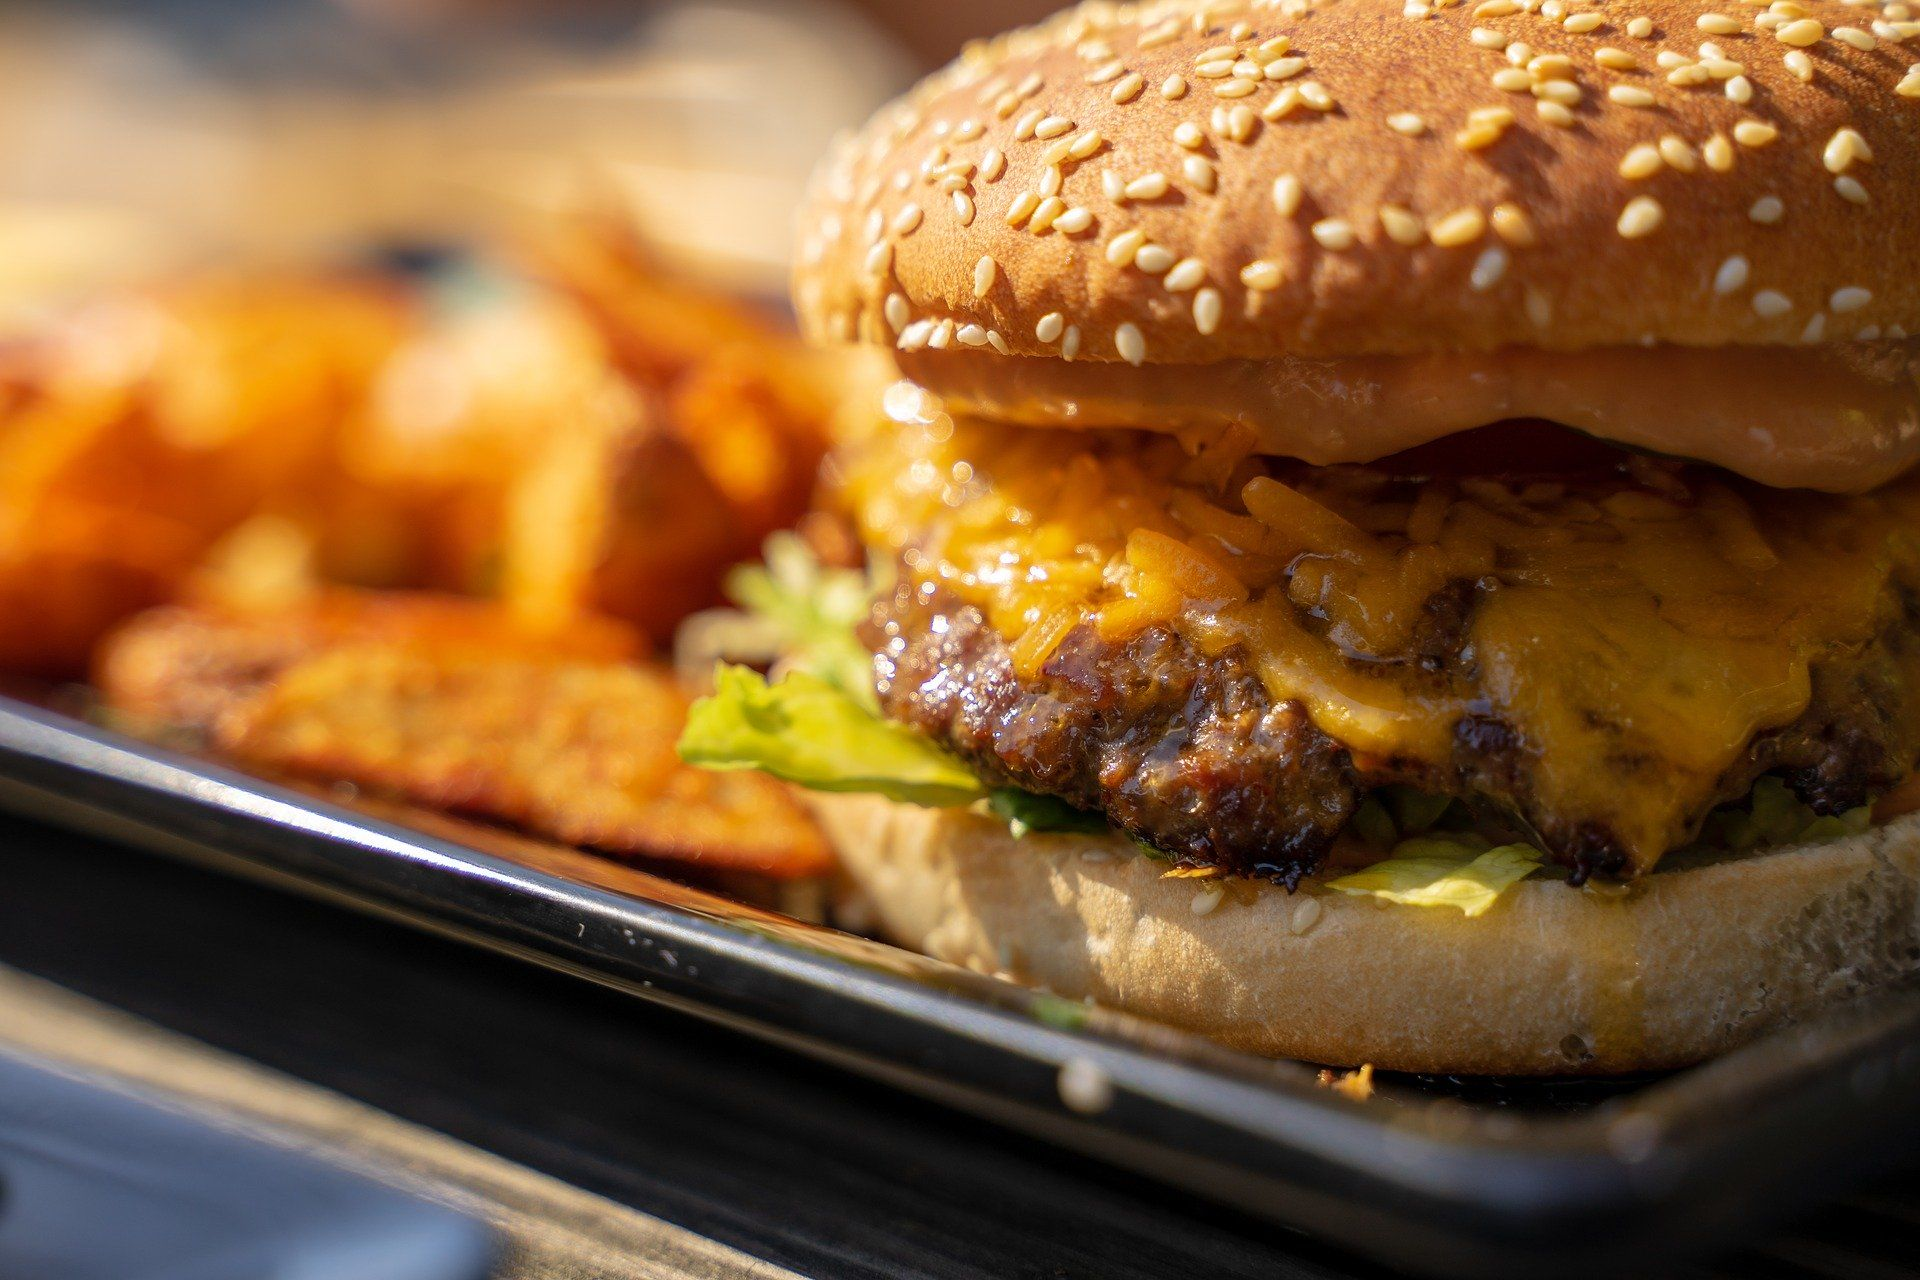 Cheeseburger with fries is not good for brain health